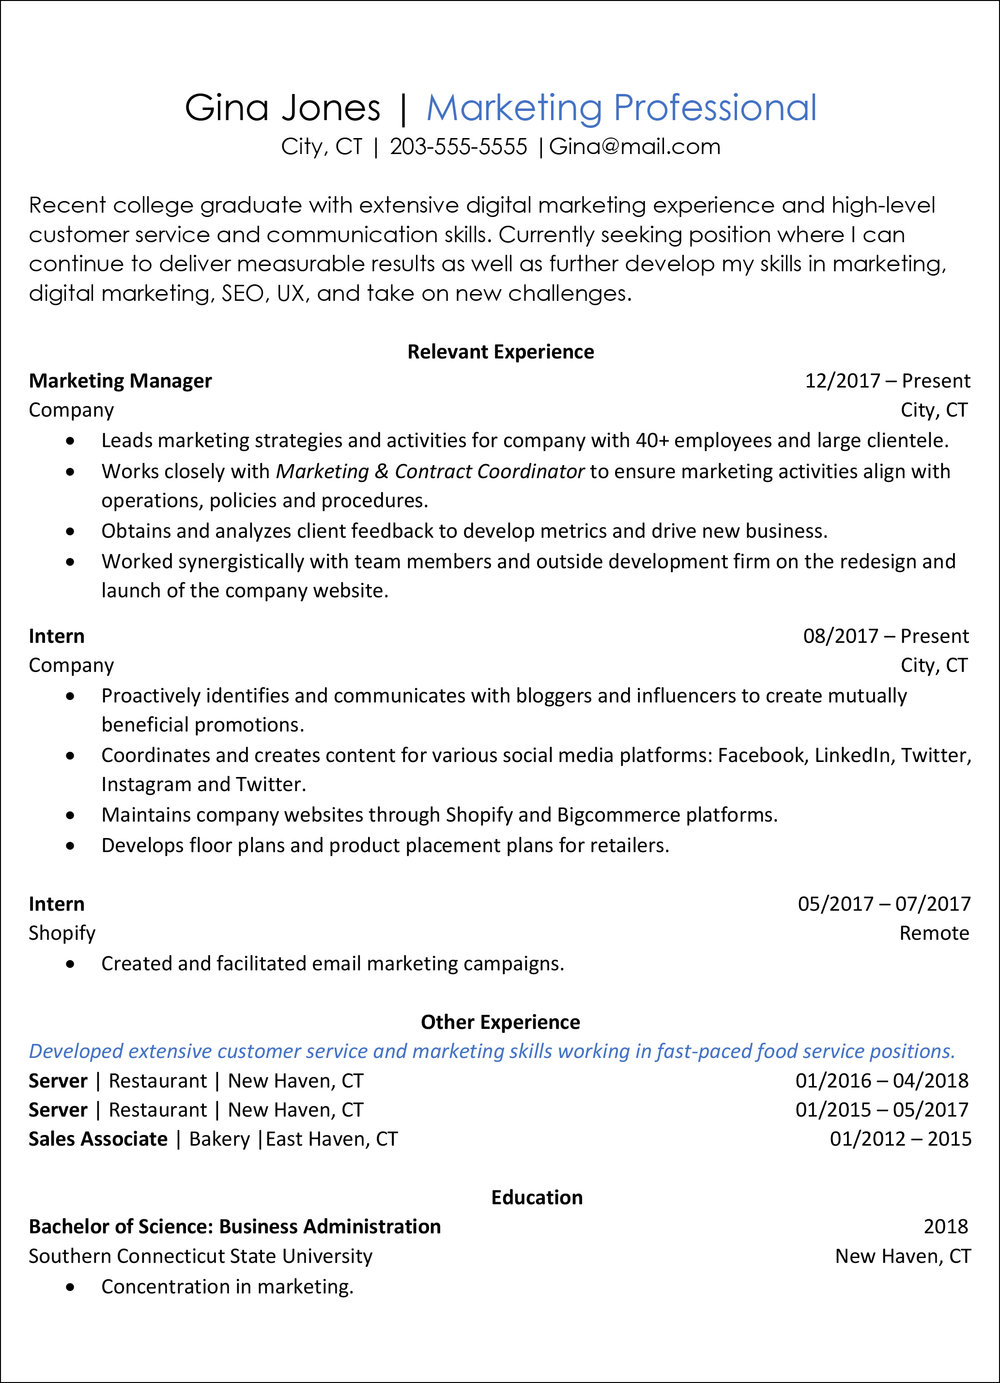 Recent-College-Graduate-Resume.jpg